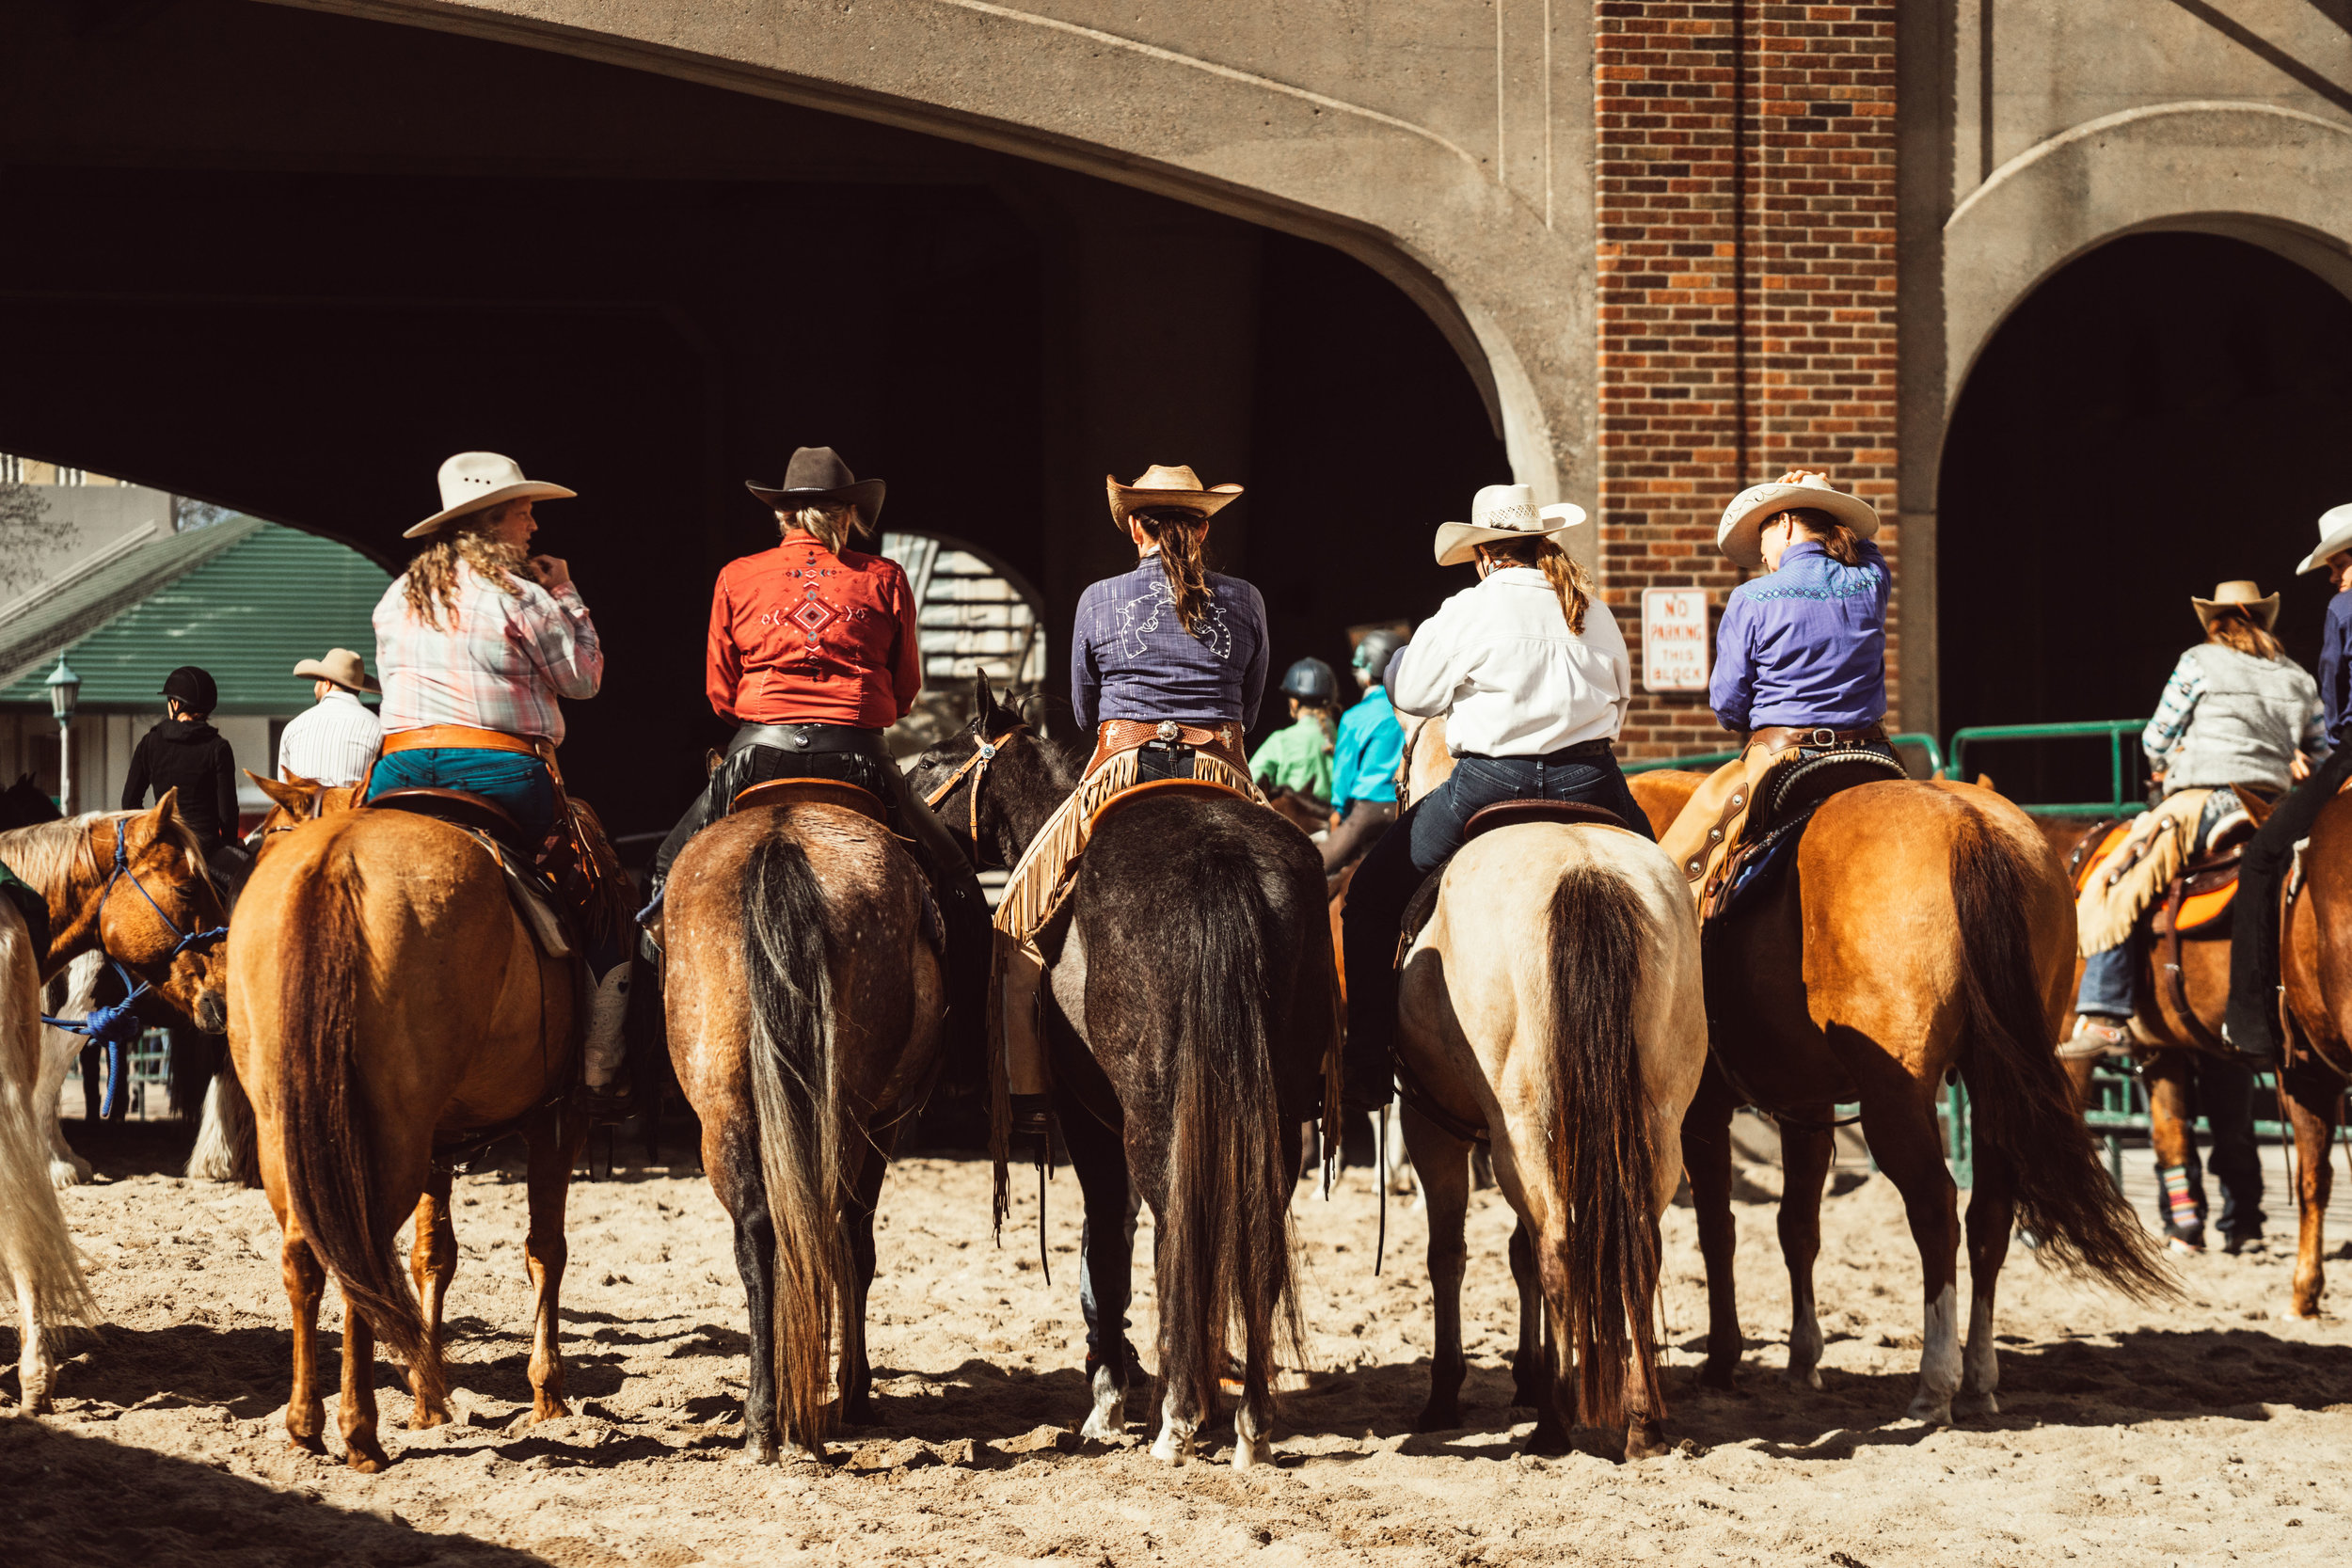 Minnesota-Horse-Expo-Back-Of-Horses-Alyssa-Smolen-Photography.jpg